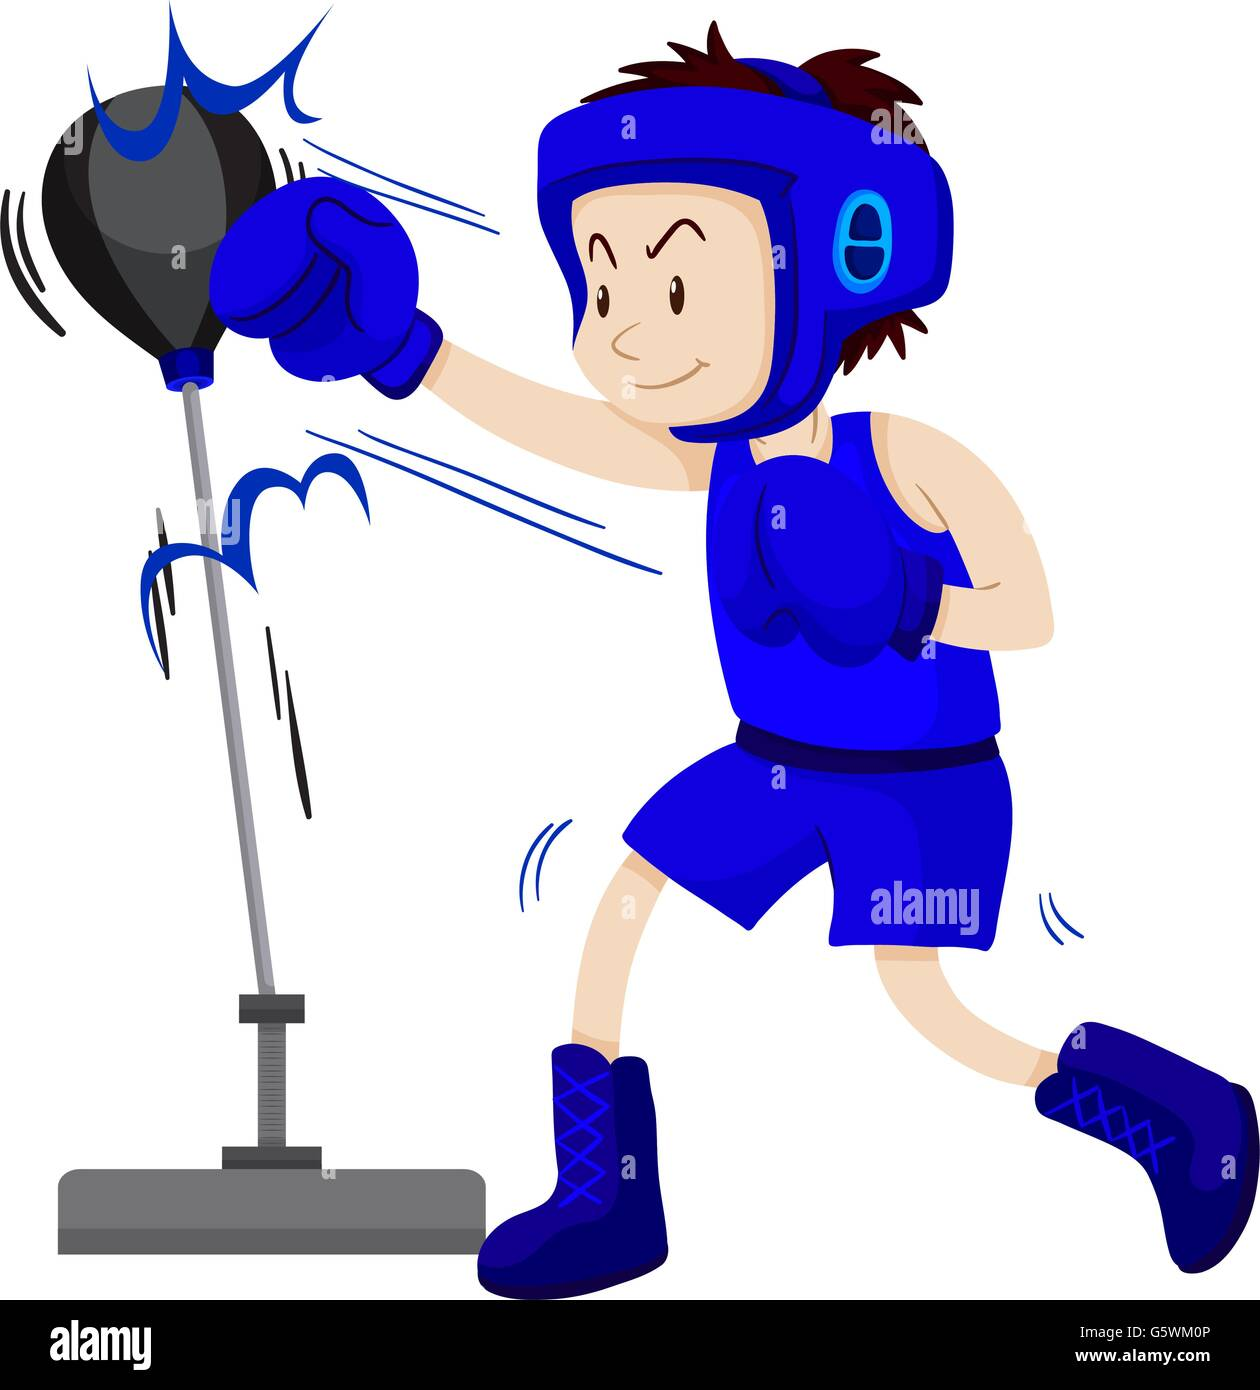 Boxer in blue outfit practice punching illustration - Stock Vector